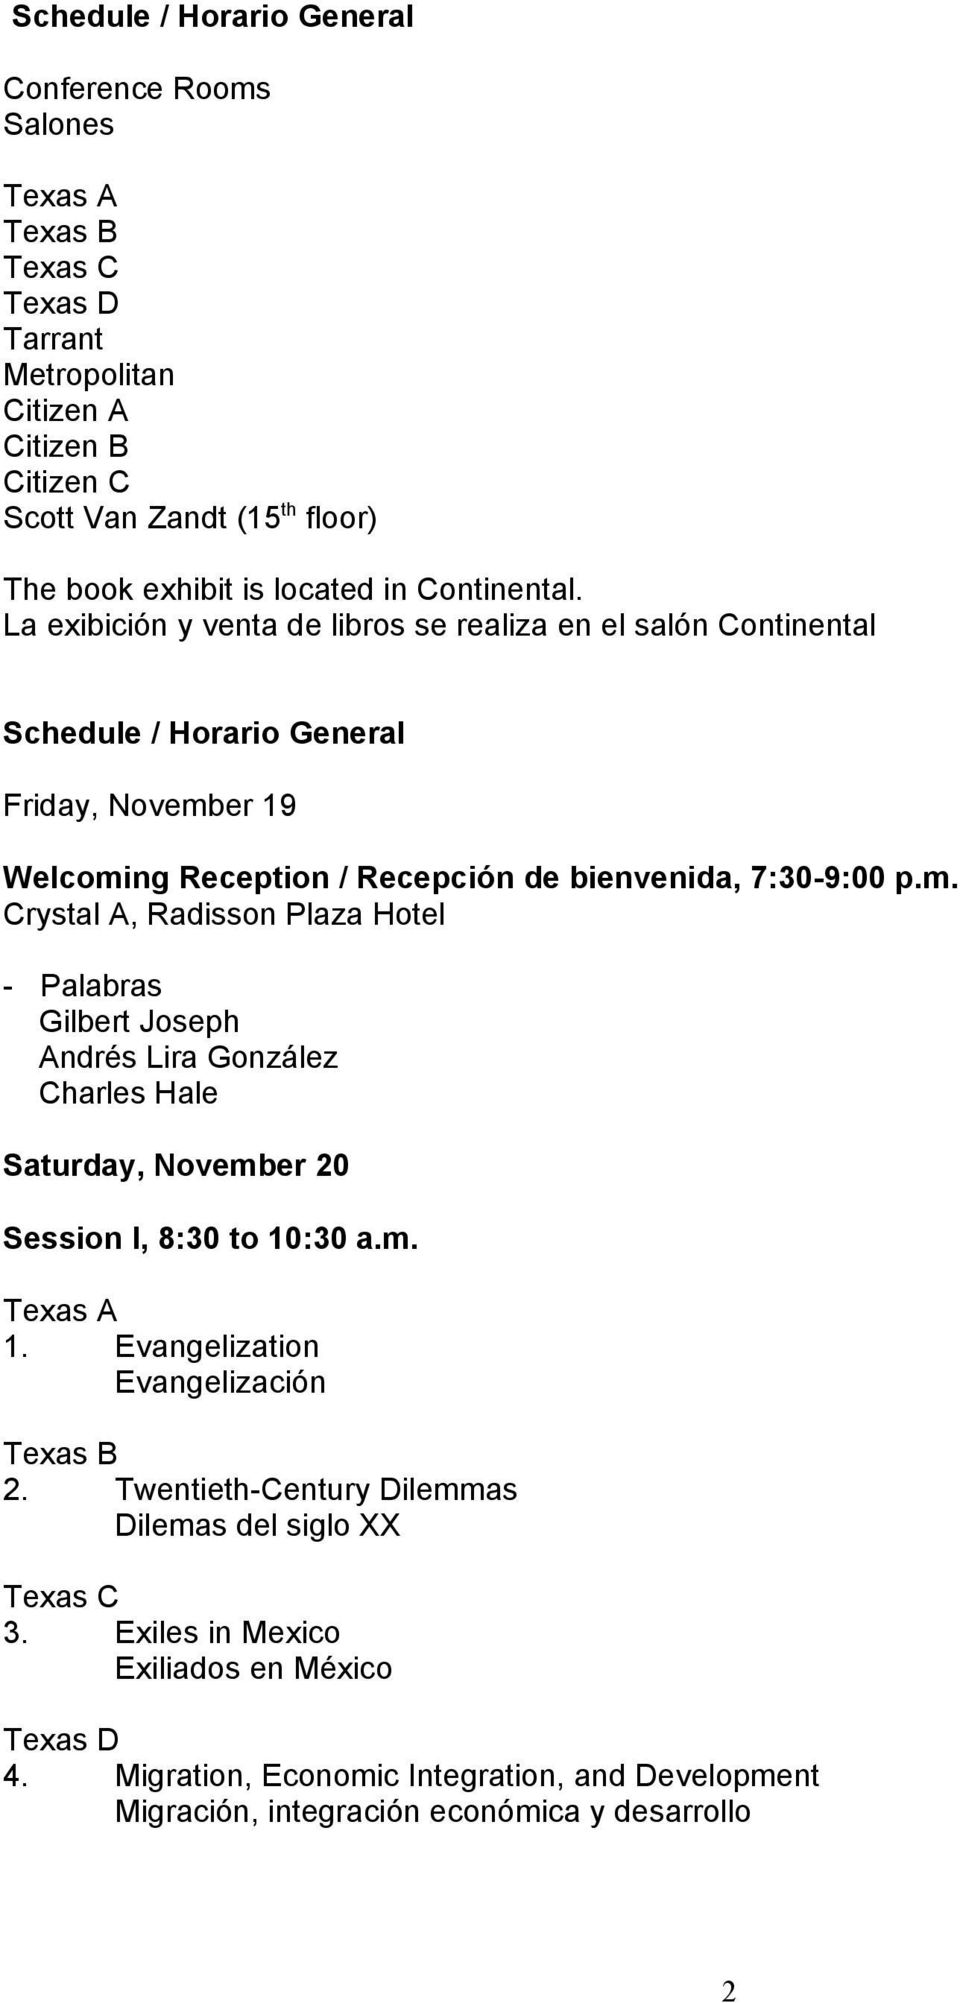 er 19 Welcoming Reception / Recepción de bienvenida, 7:30-9:00 p.m. Crystal A, Radisson Plaza Hotel - Palabras Gilbert Joseph Andrés Lira González Charles Hale Saturday, November 20 Session I, 8:30 to 10:30 a.